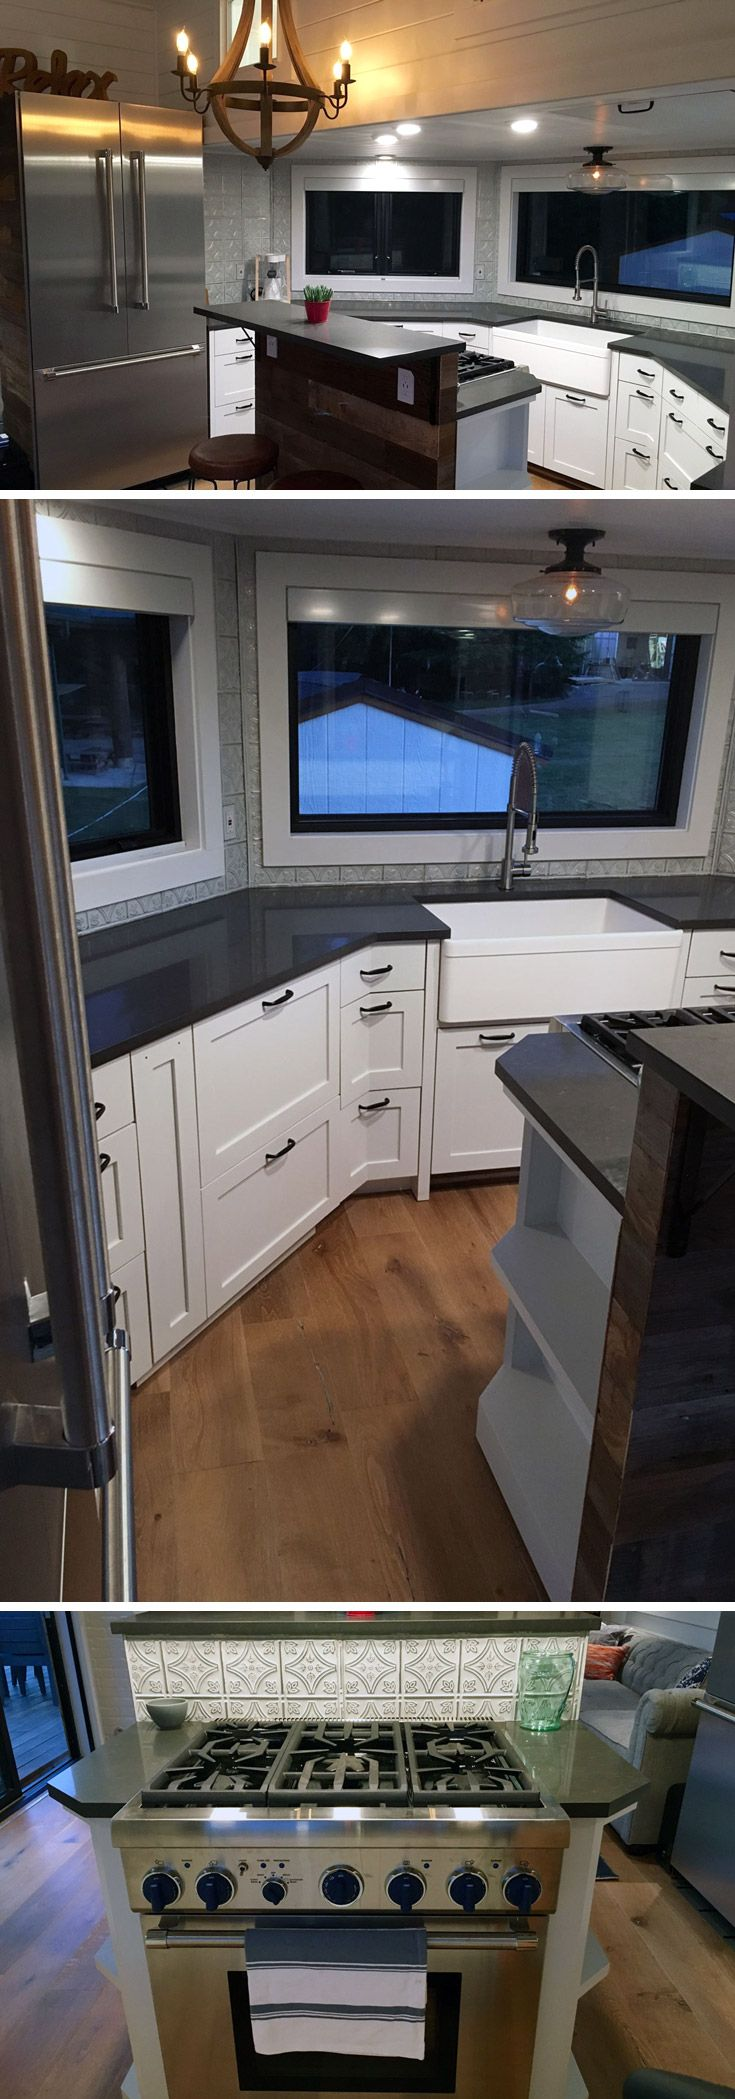 Best Hawaii House By Tiny Heirloom Small Space Kitchen 400 x 300